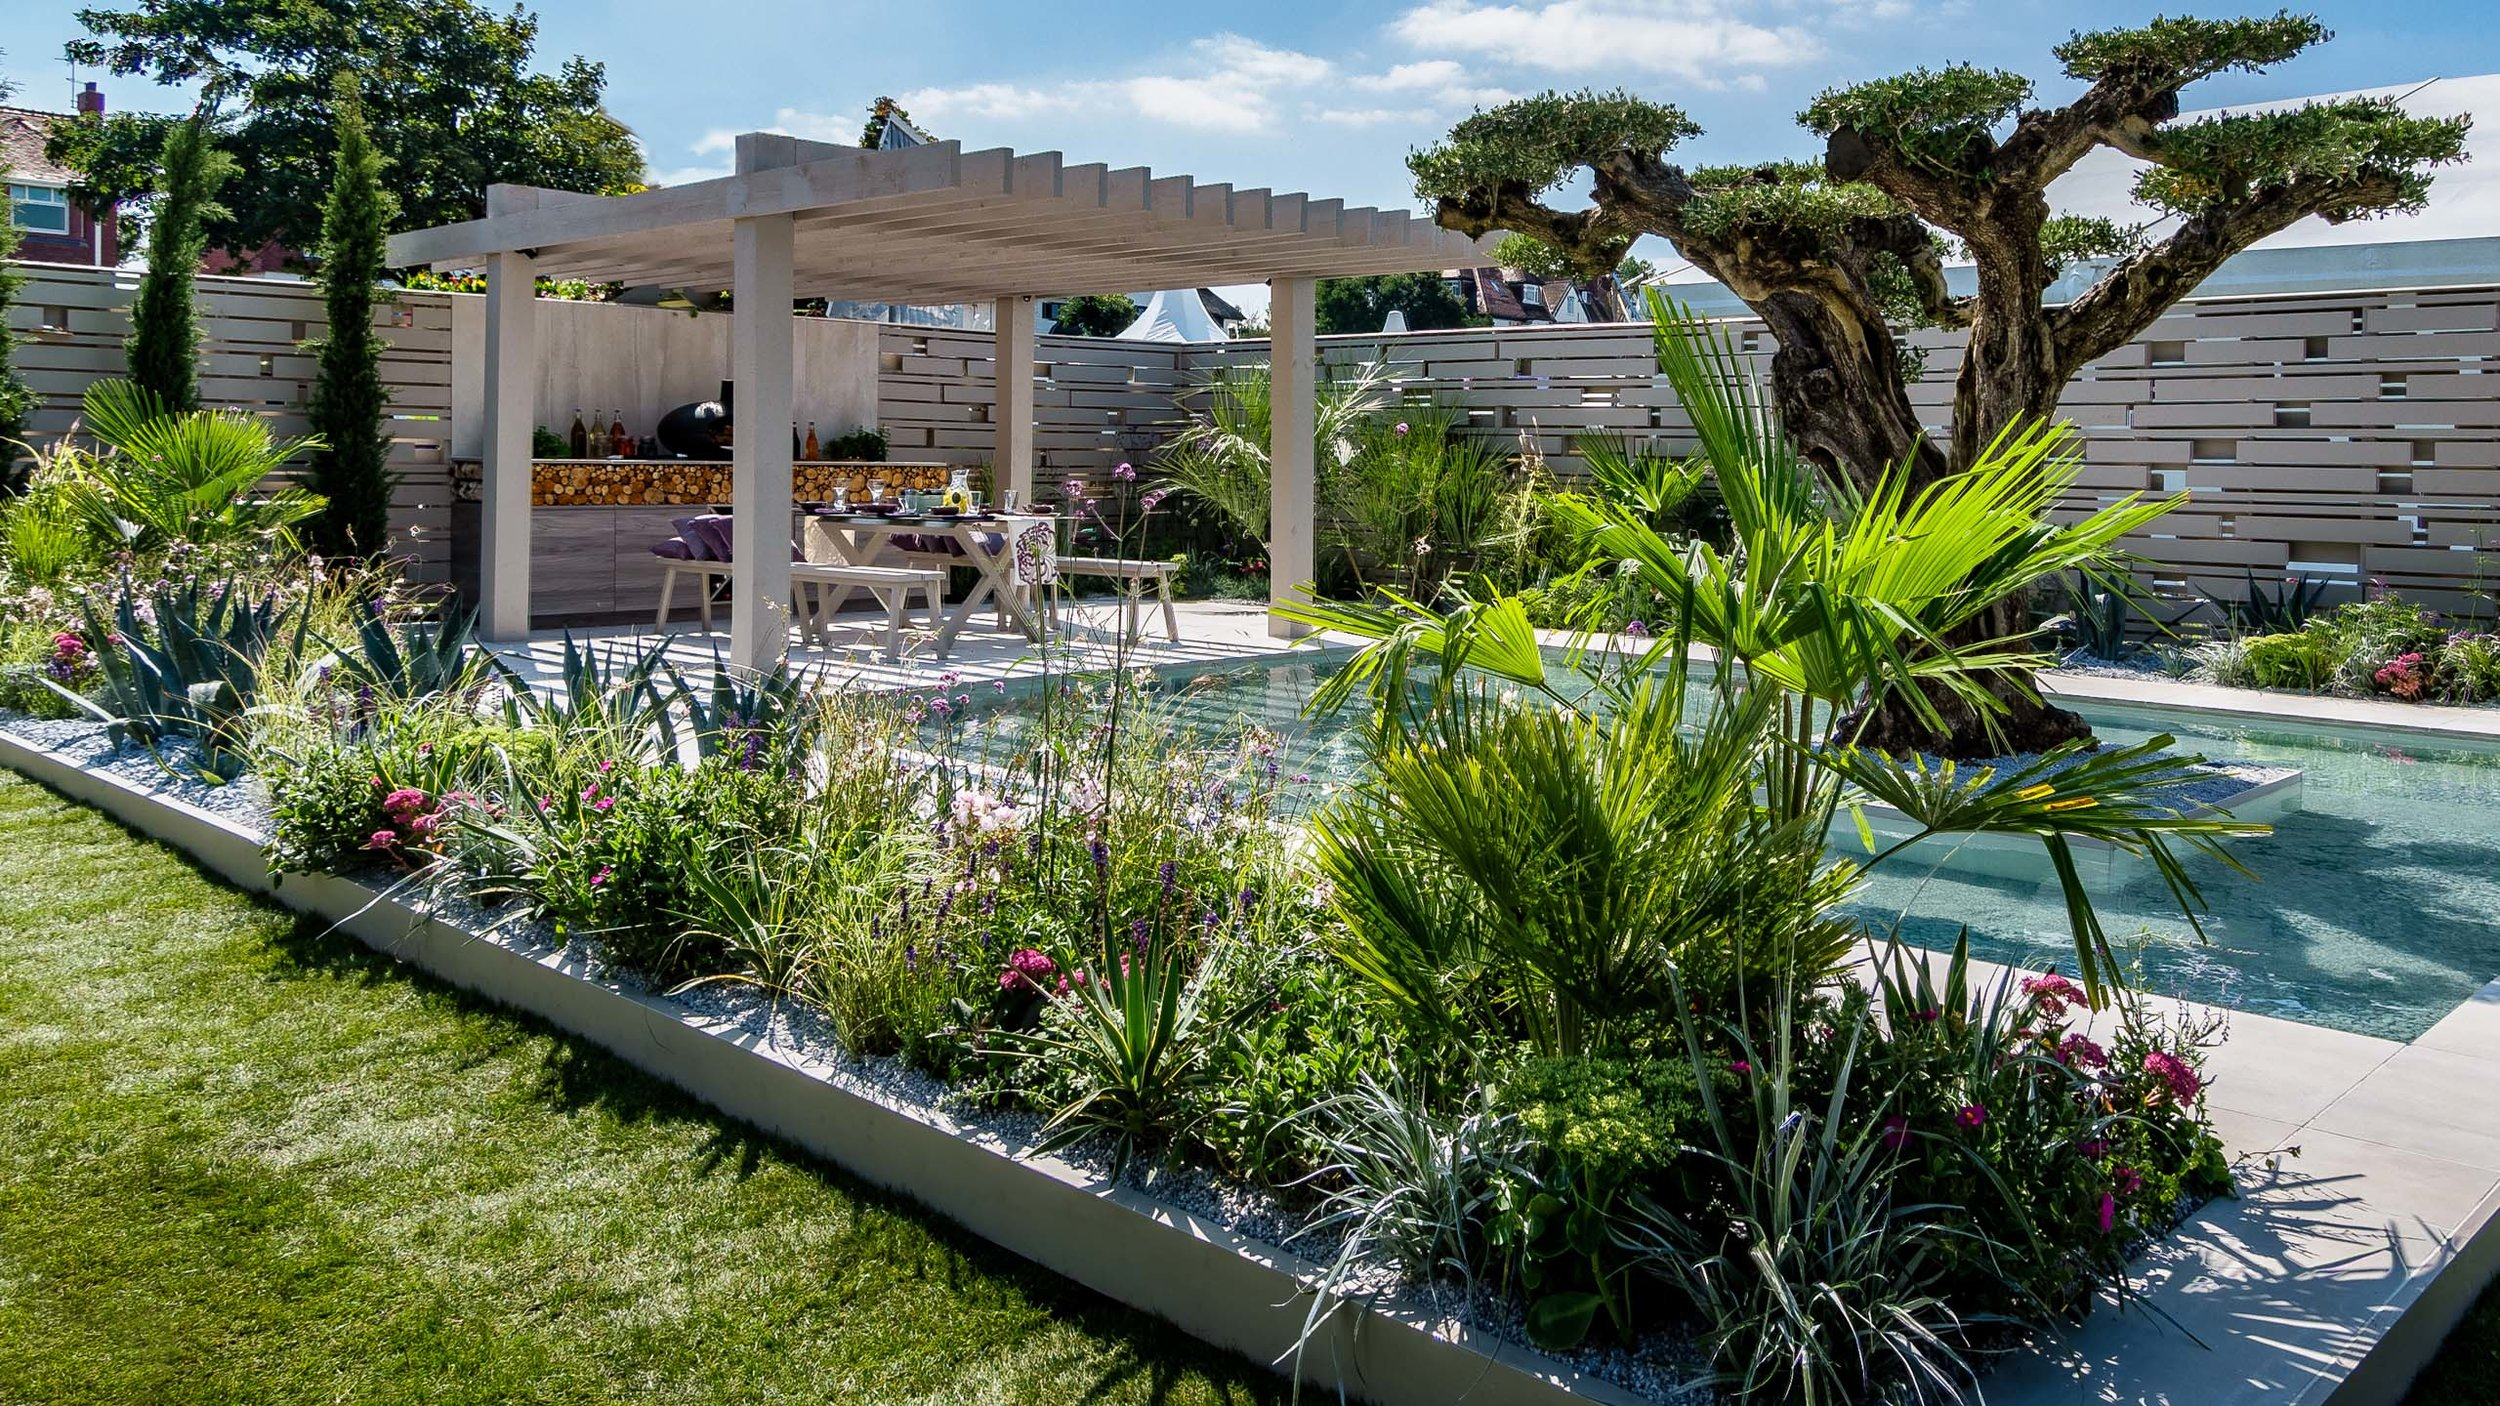 Southport Garden Design: A View Of The Olive Tree: